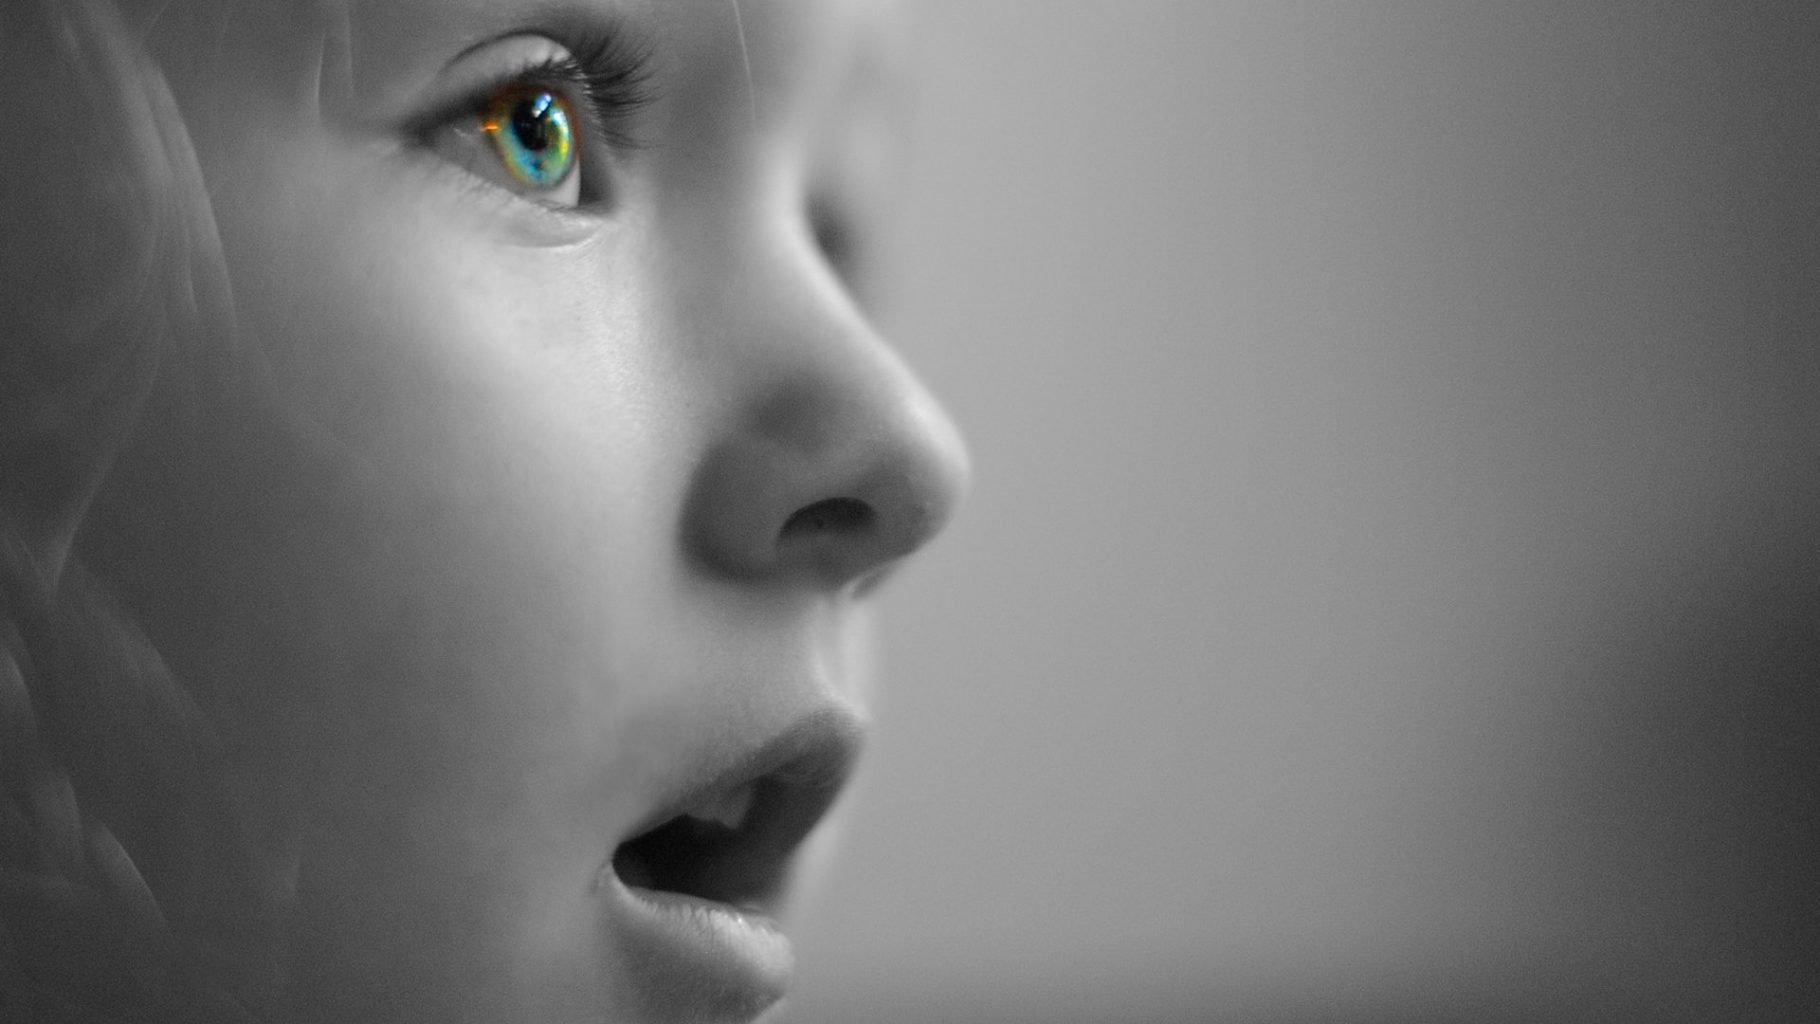 Image: Big-eyed girl with an awestruck face